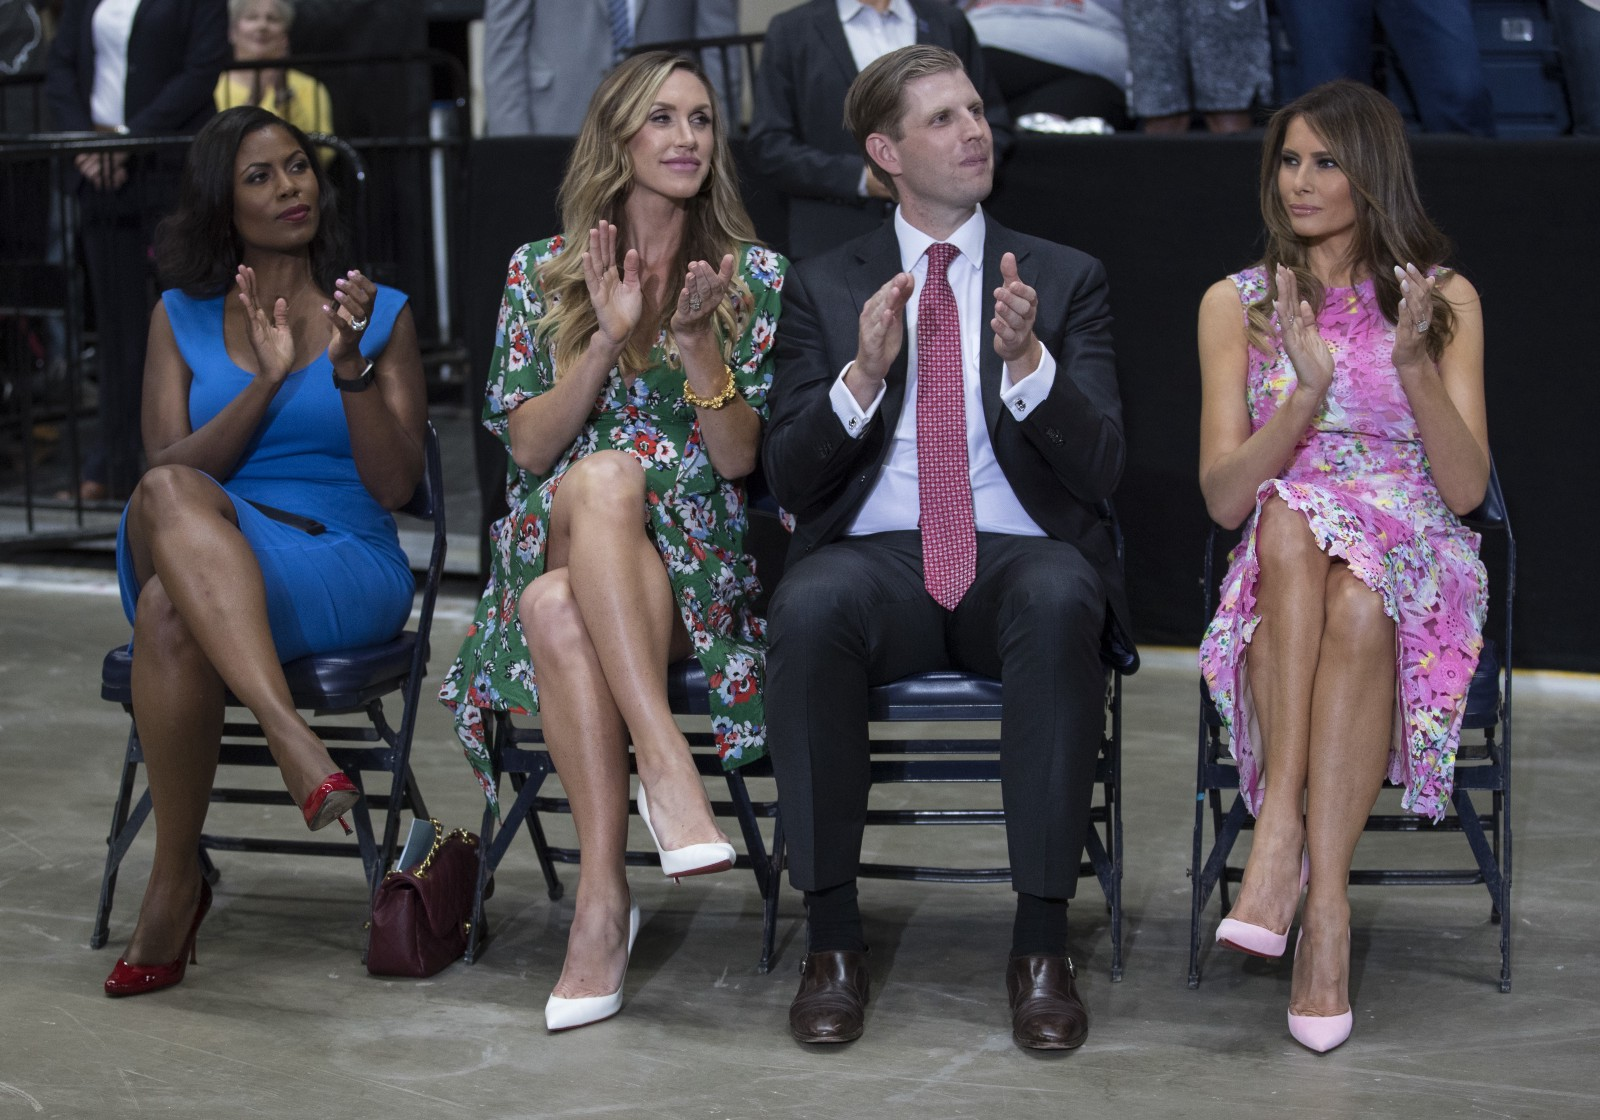 Meet Trump's Daughter-in-Law, Lara Trump